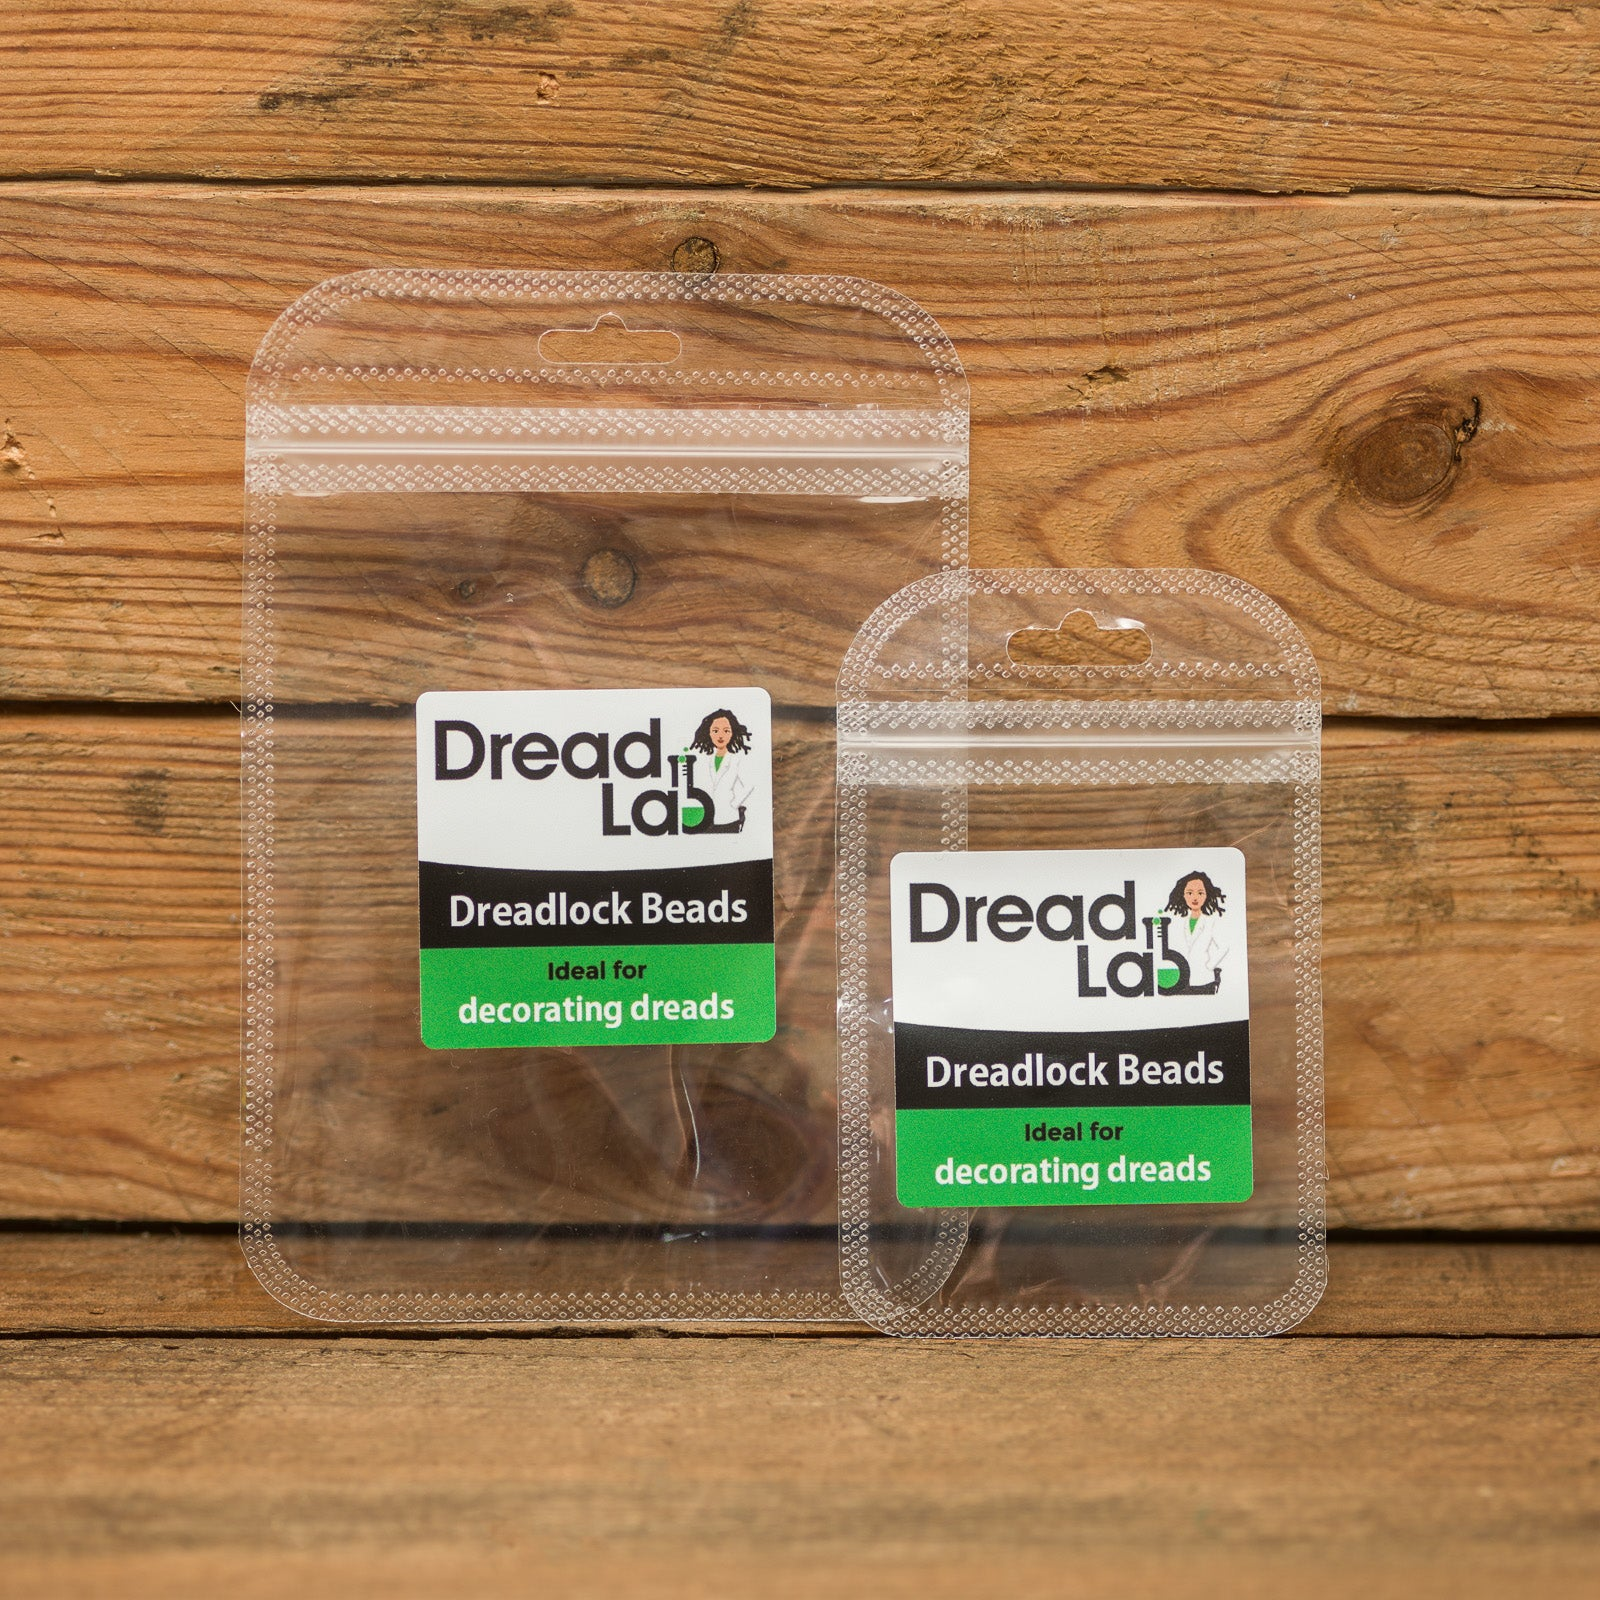 DreadLab - Stainless Steel Donut Dread Beads Silver Colour